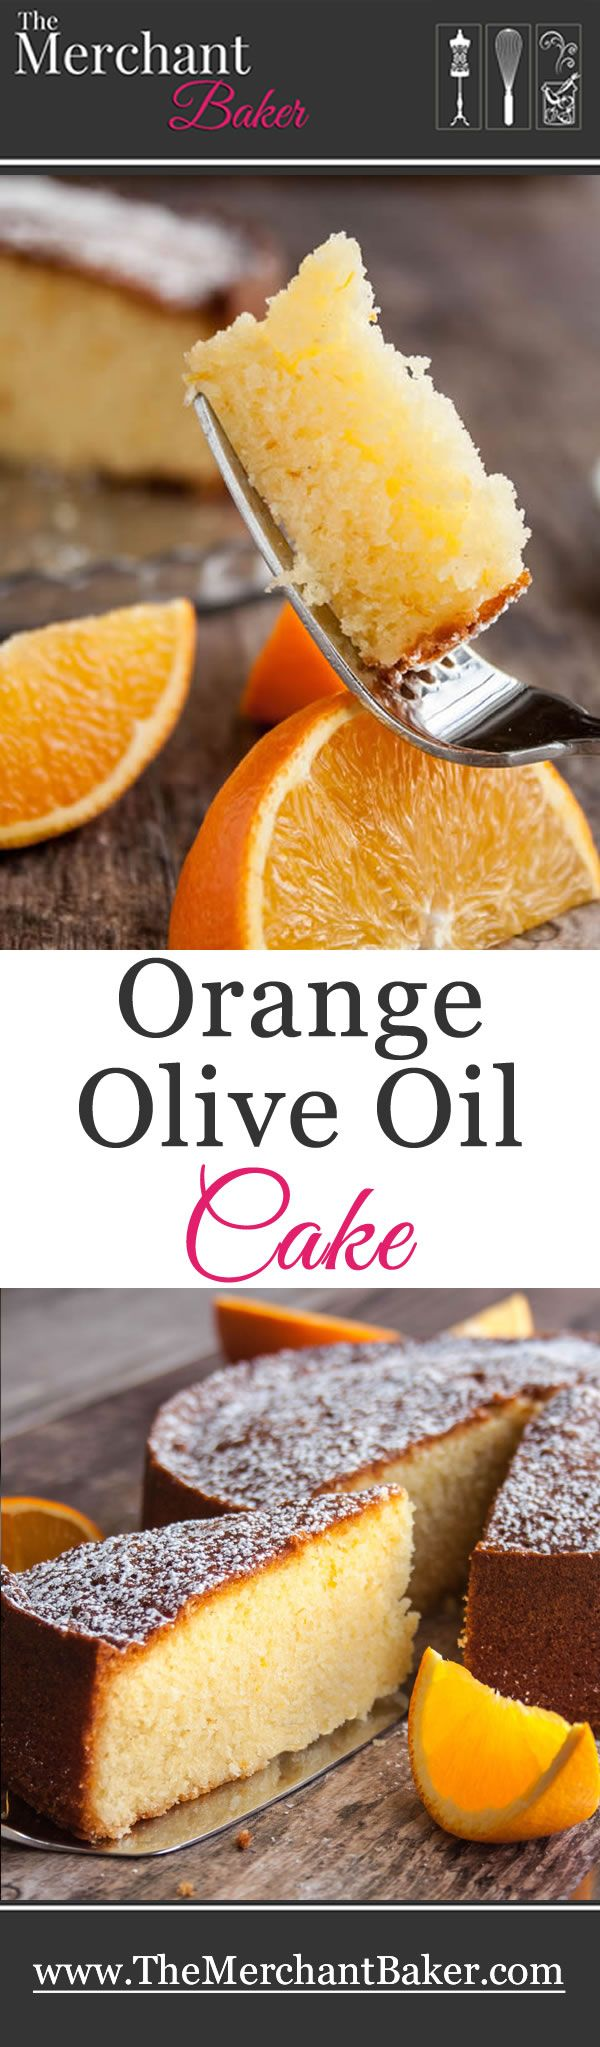 Orange Olive Oil Cake. Reduce sugar amount!